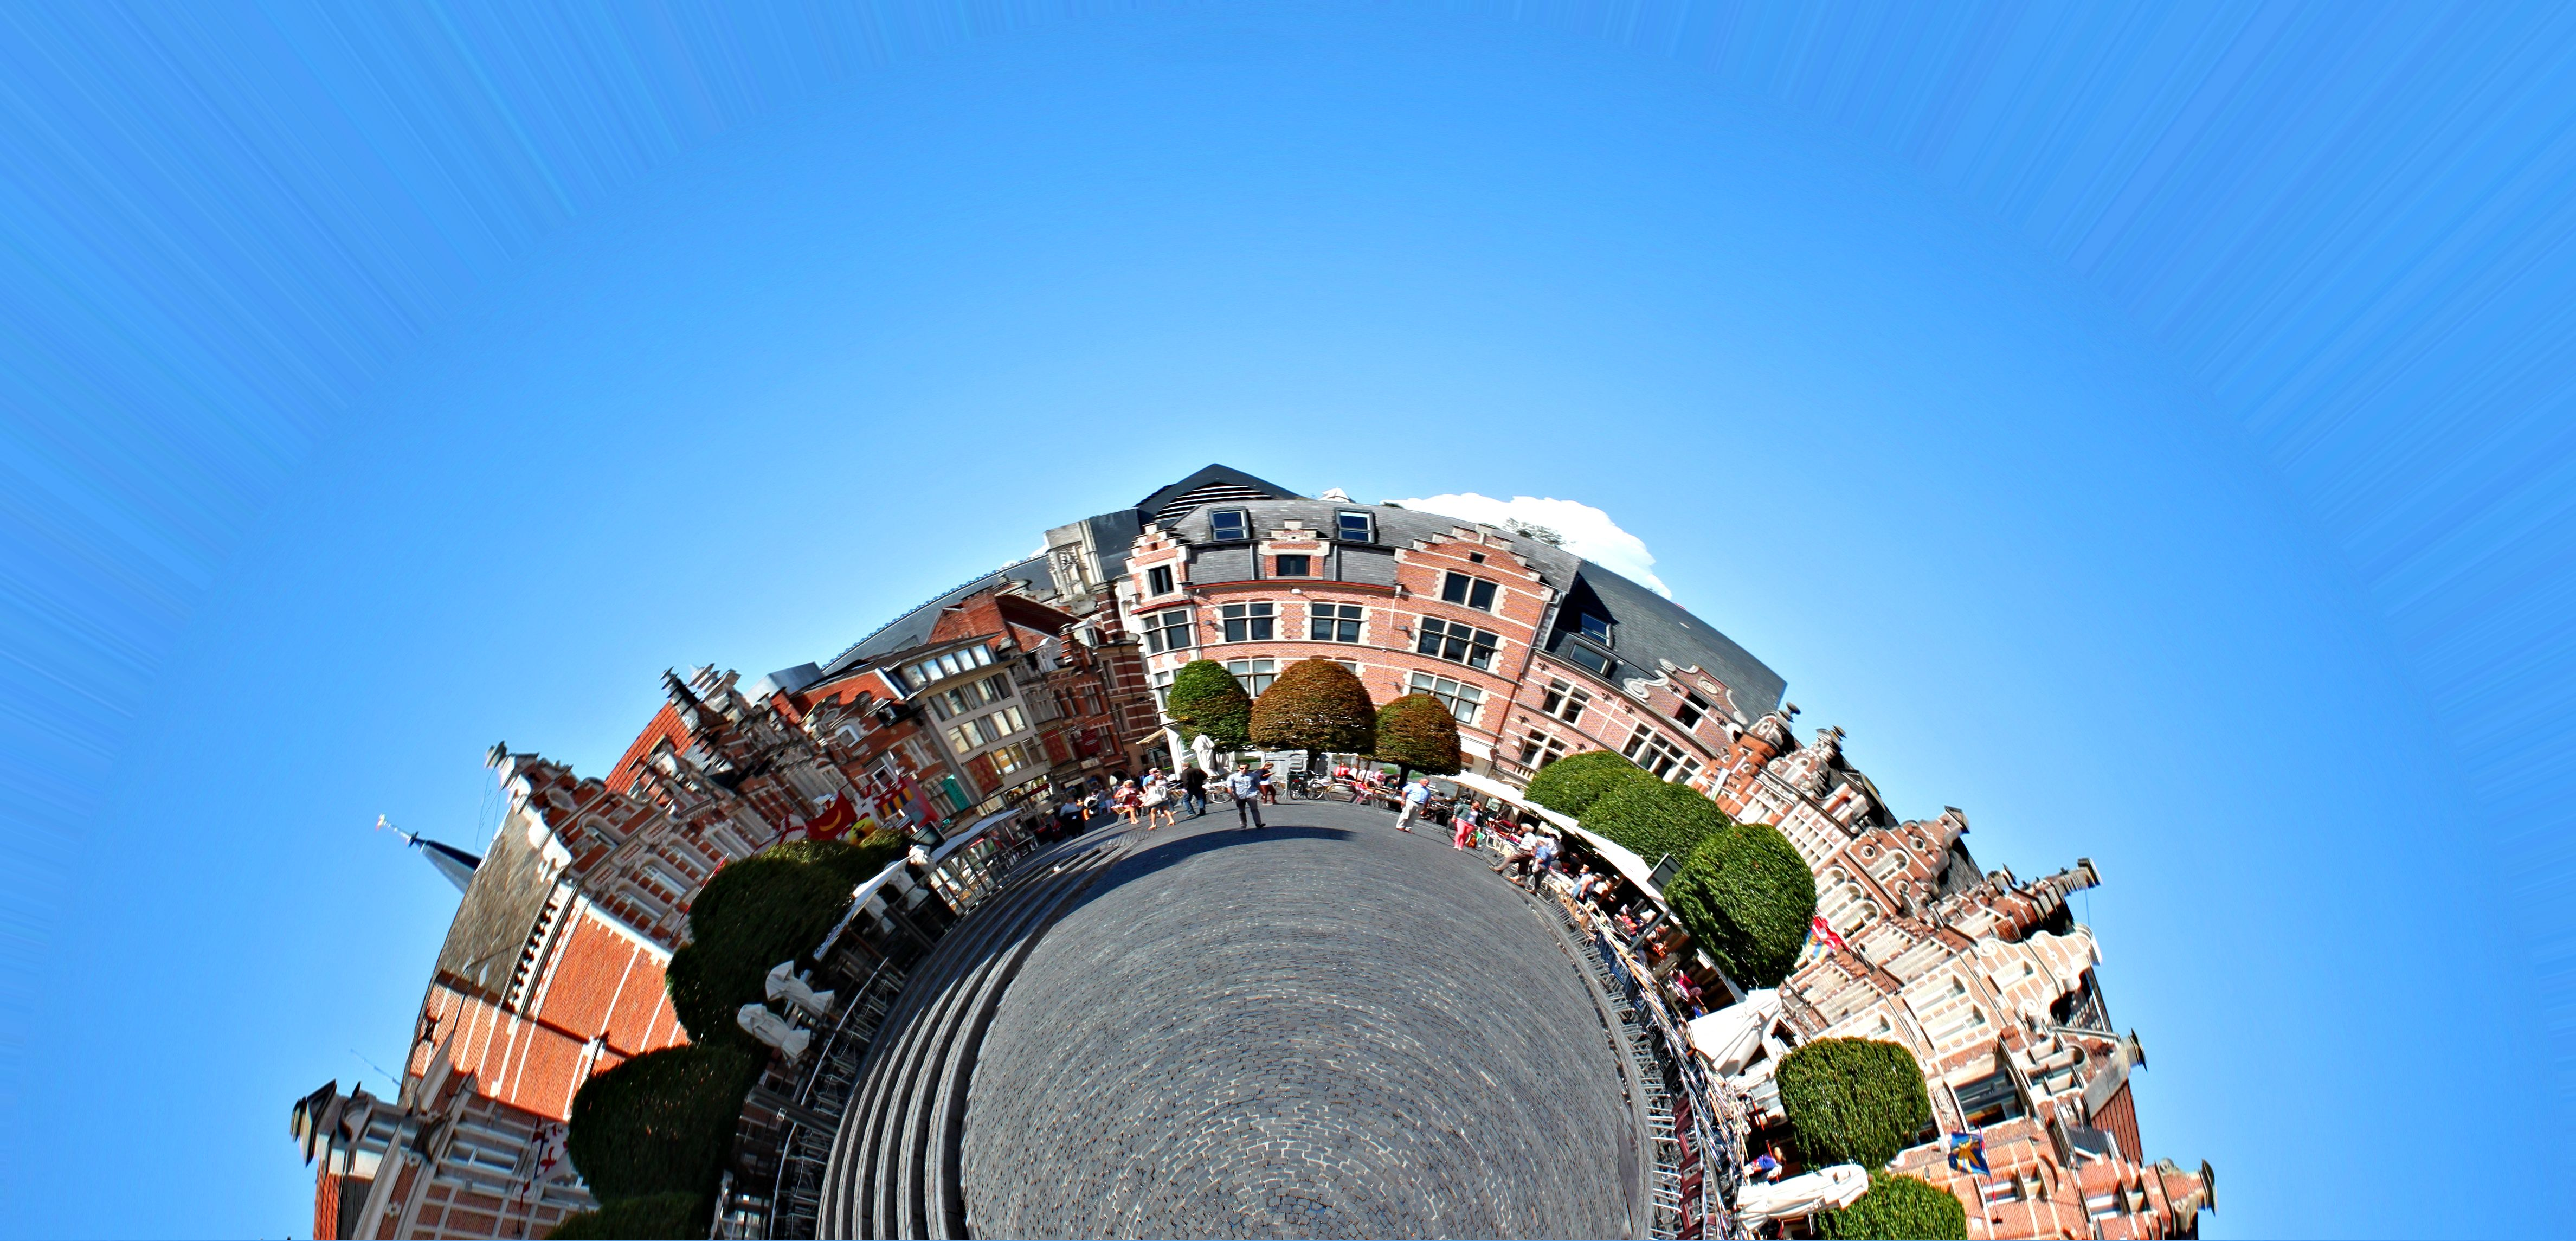 LEUVEN – A GLOBAL VILLAGE | PHOTO BY SALLY SHARIF AND SERENA CORIO